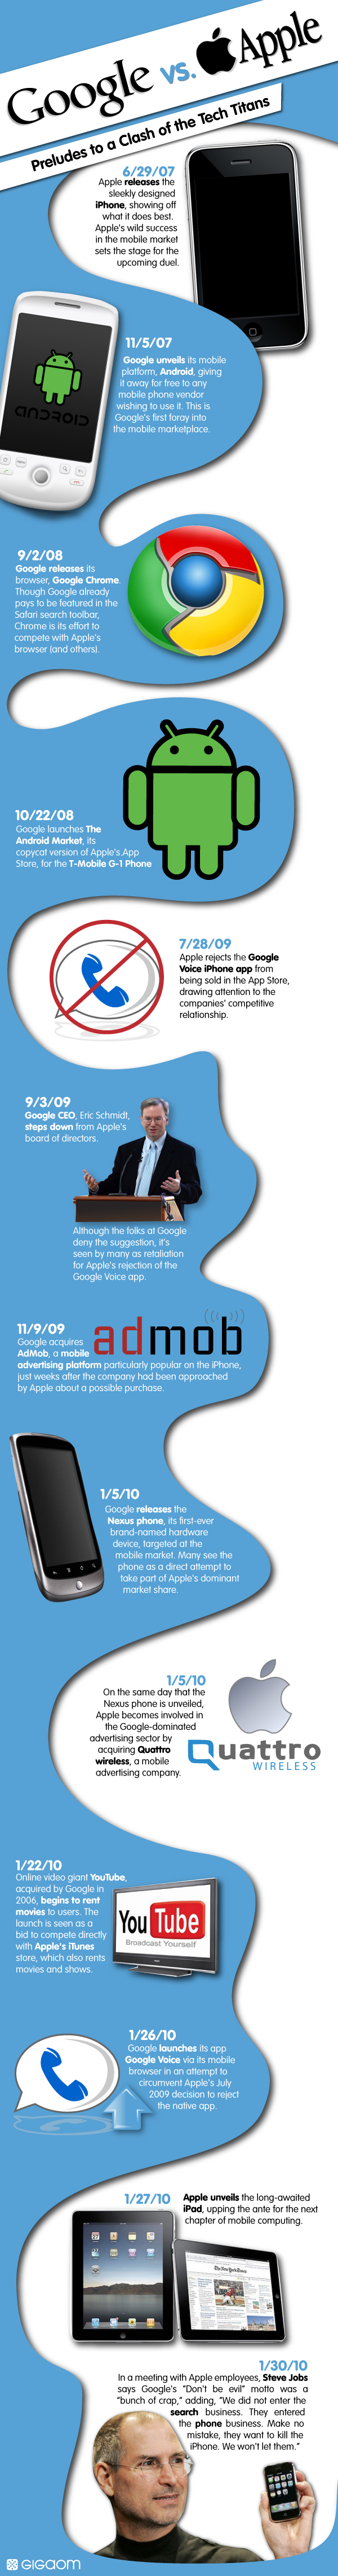 Infográfico: Google vs. Apple